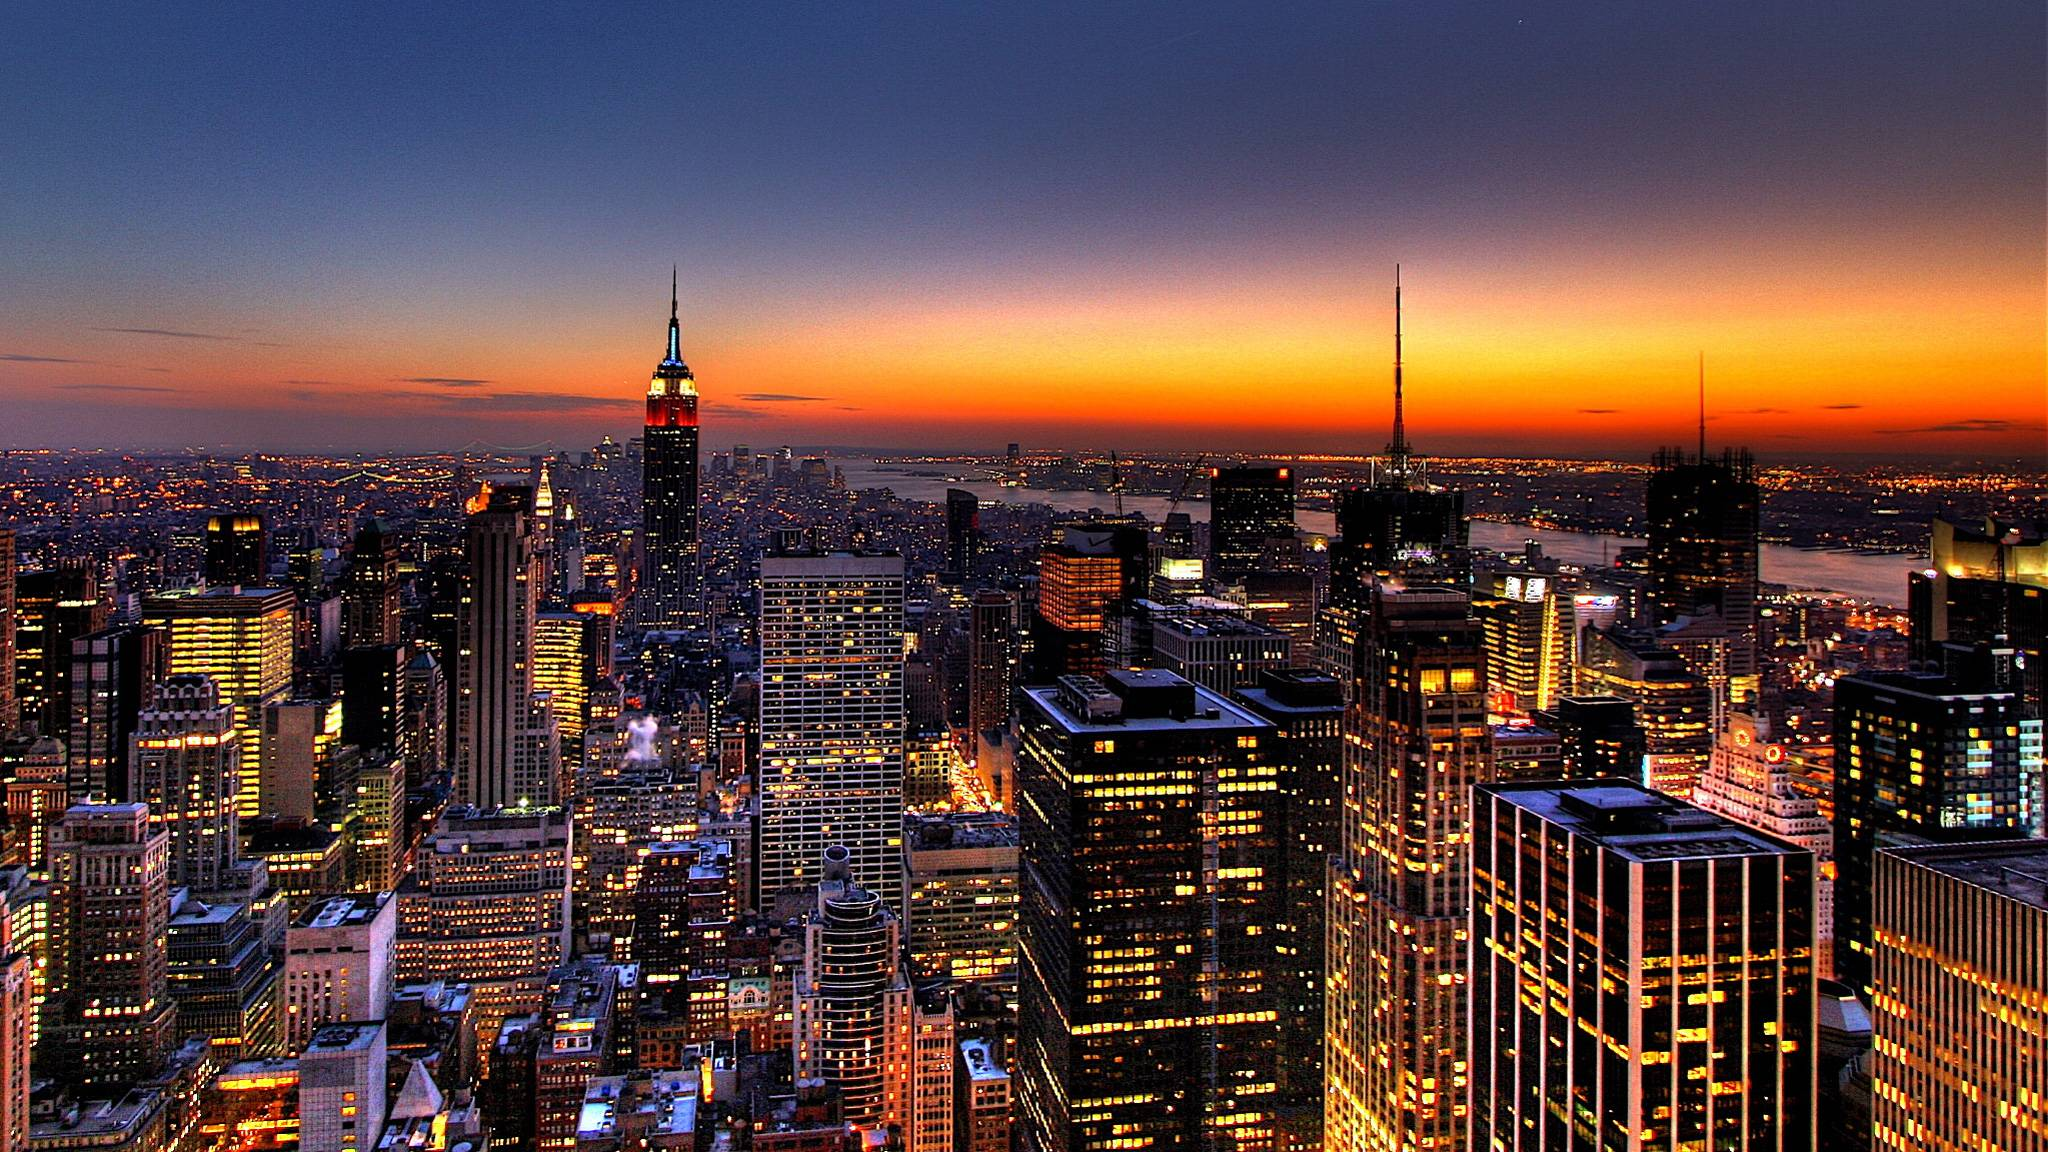 3d Live Wallpaper 9apps Download New York City Skyline At Night Wallpaper Gallery